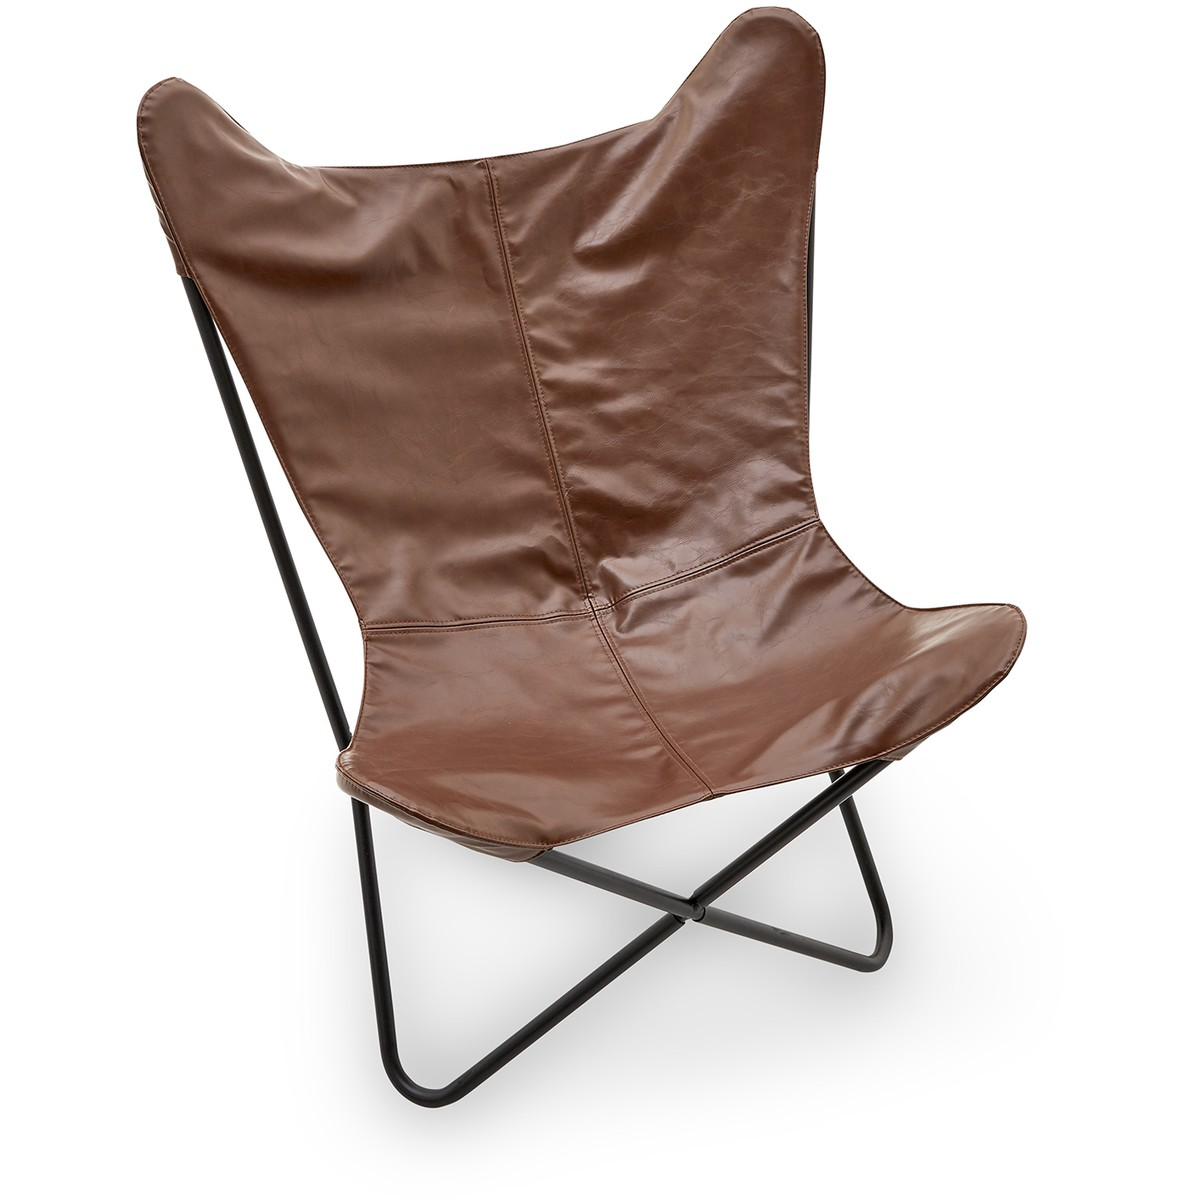 Brown Leather Butterfly Chair Kodu Pu Leather Butterfly Chair Brown Big W